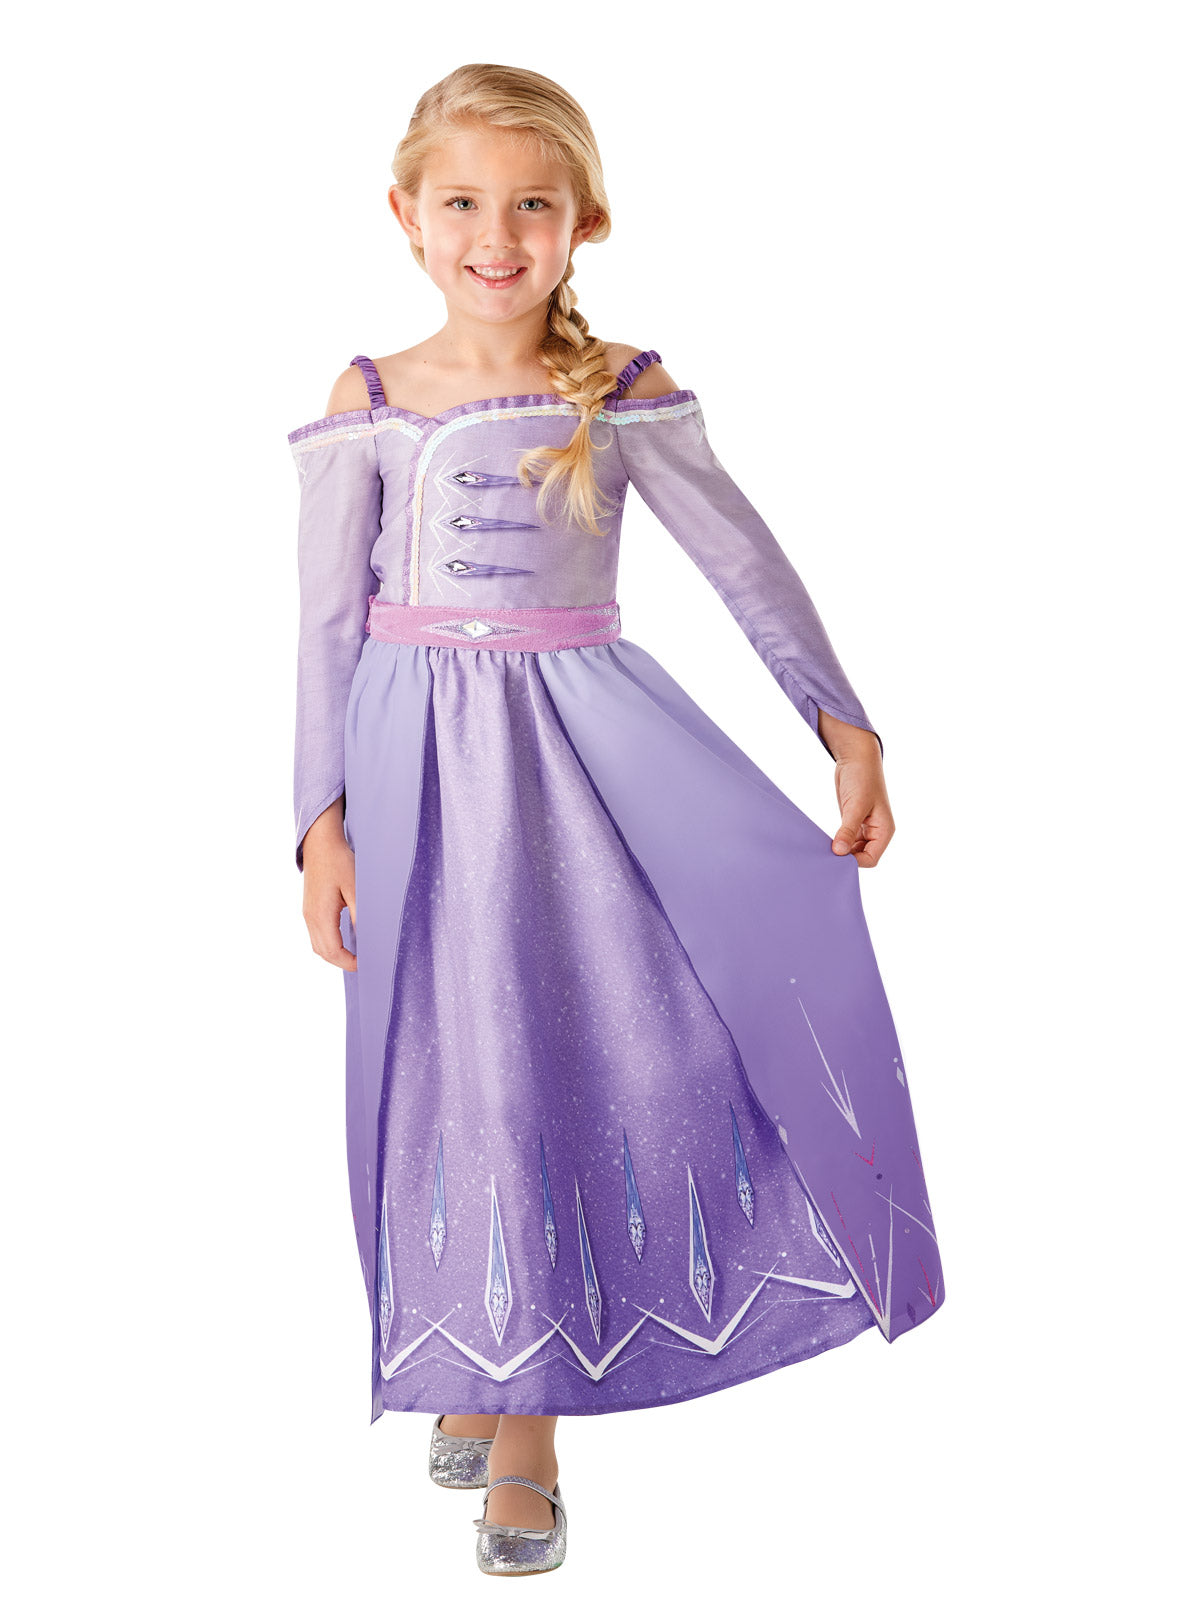 Elsa Frozen 2 Prologue Child Costume - Buy Online Only